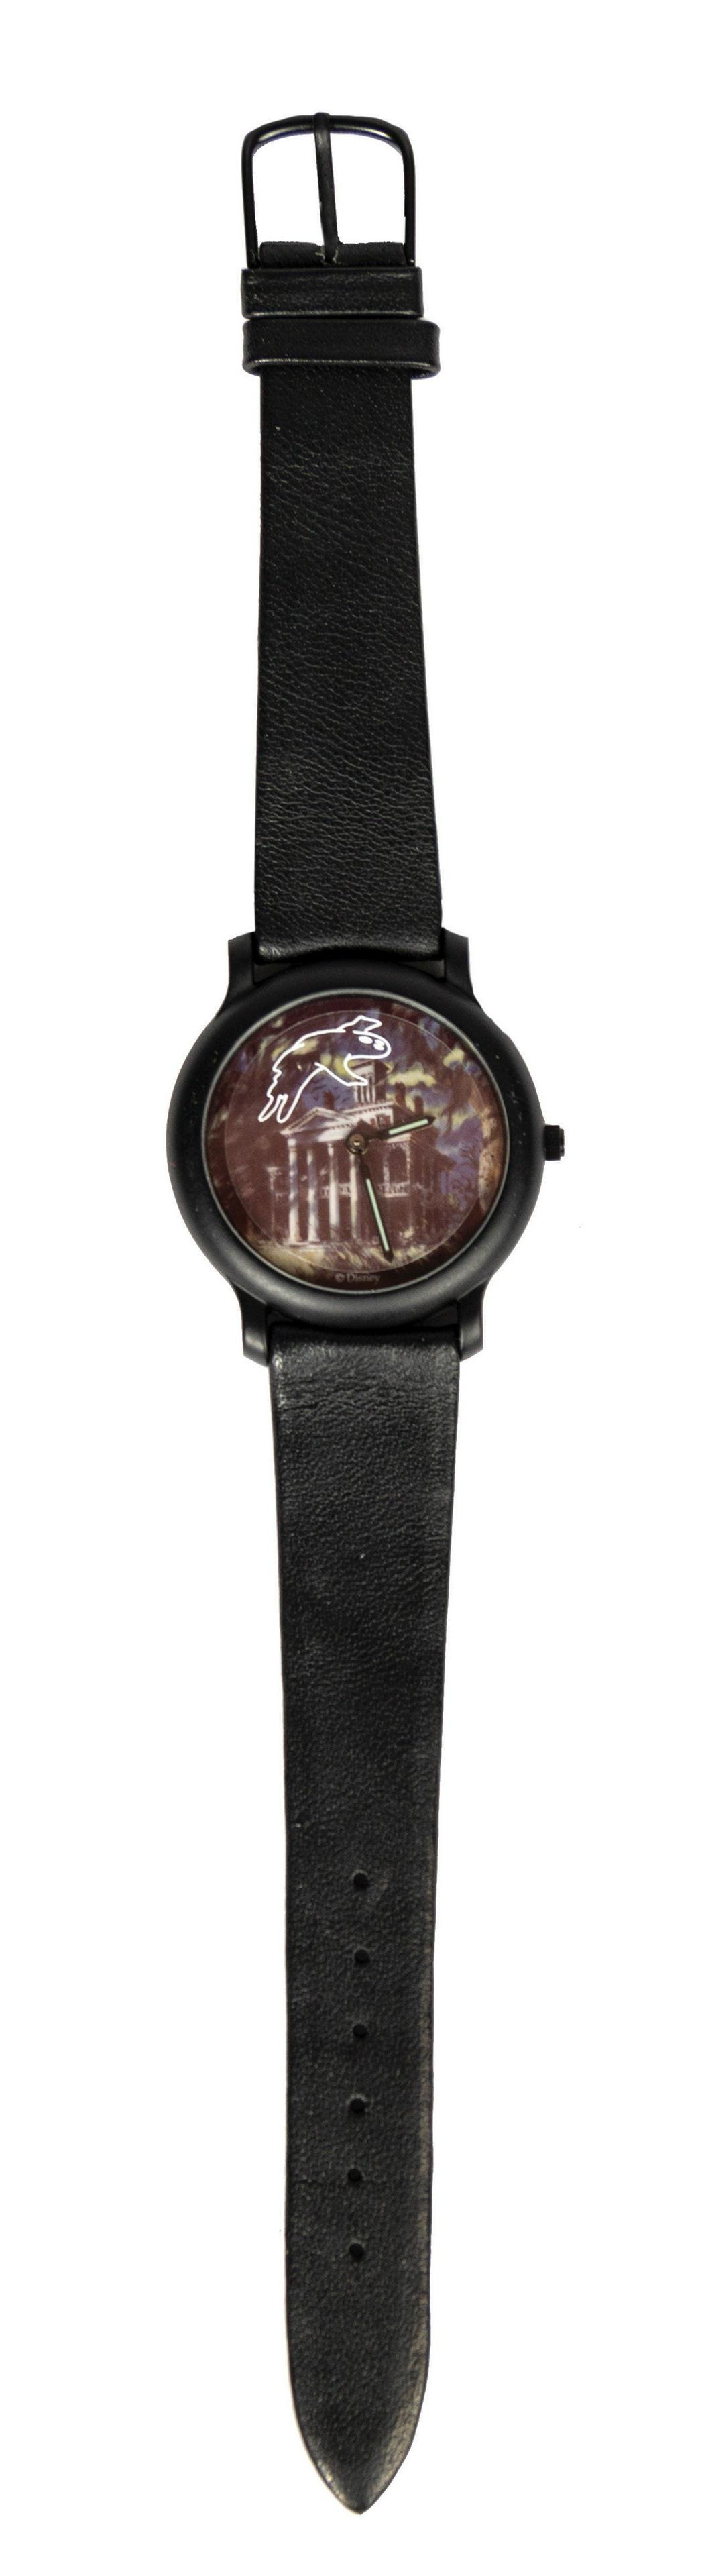 Haunted Mansion Cast Member Watch.